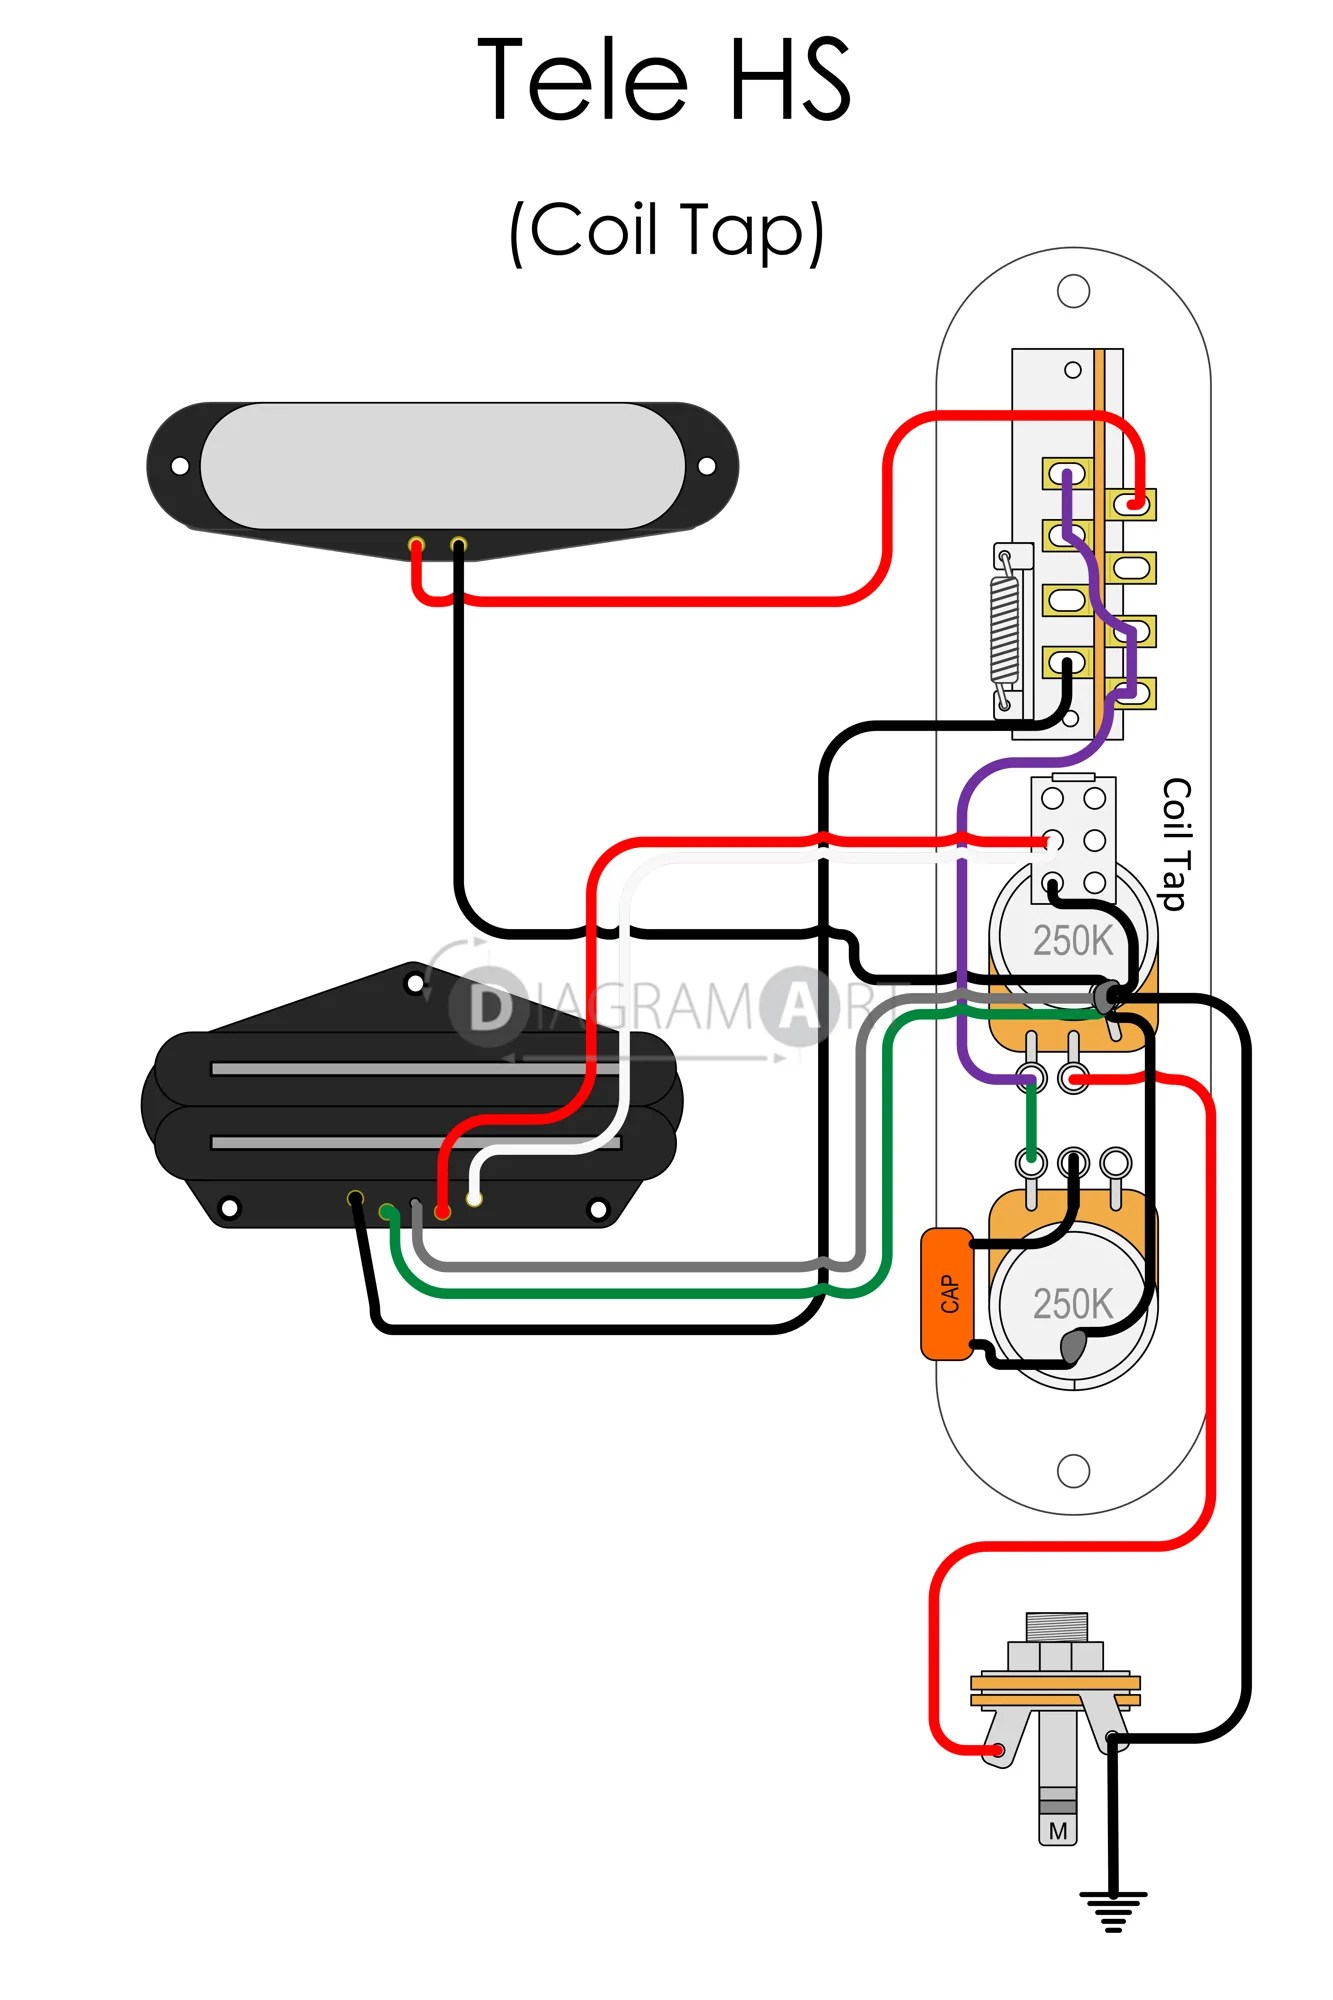 small resolution of electric guitar wiring tele hs coil tap electric circuit push pull coil tap diagram coil tap diagram